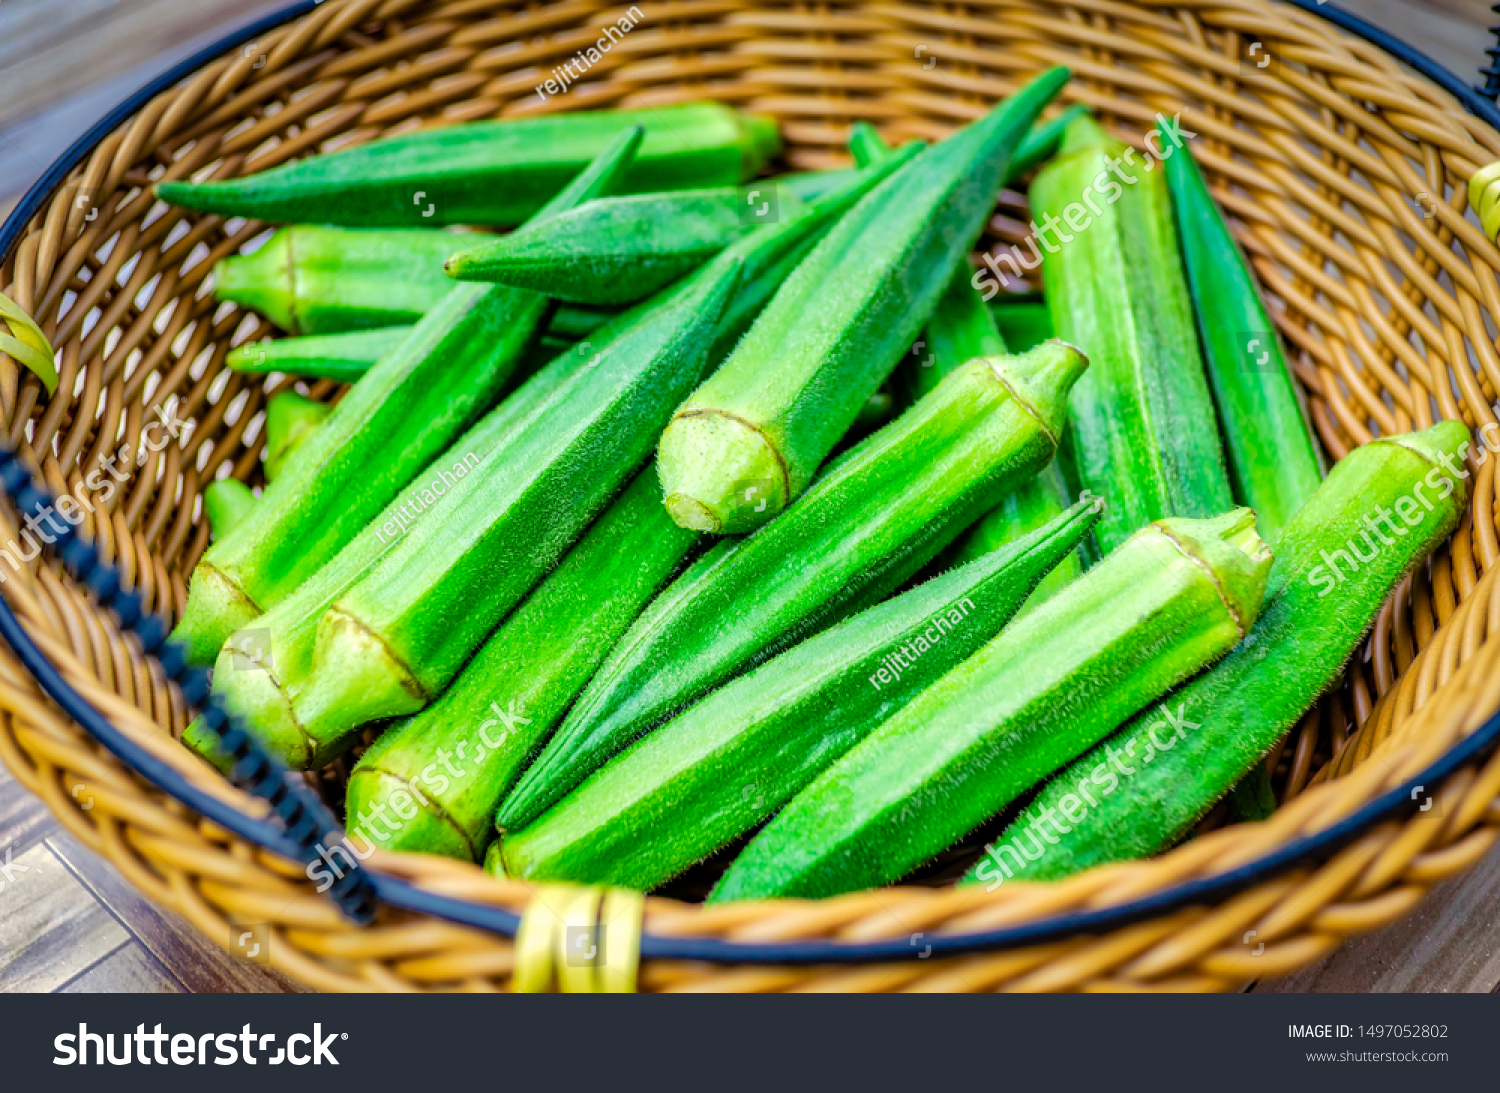 Closeup of fresh raw Okra vegetables in a basket.